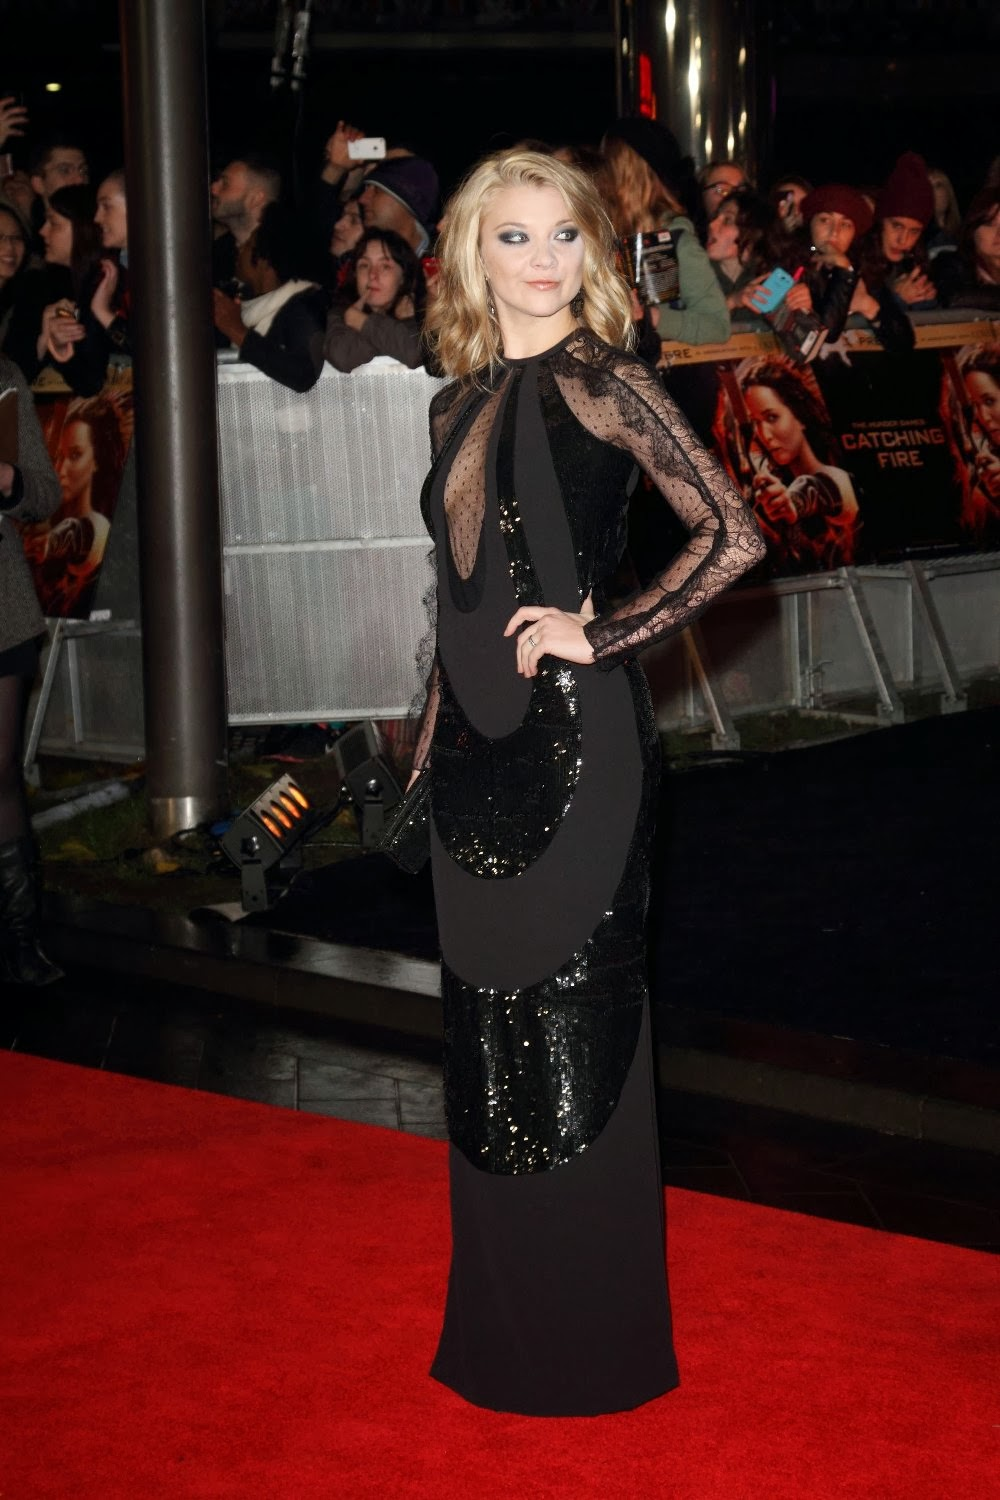 Natalie Dormer See Through Cleavage At The Hunger Games